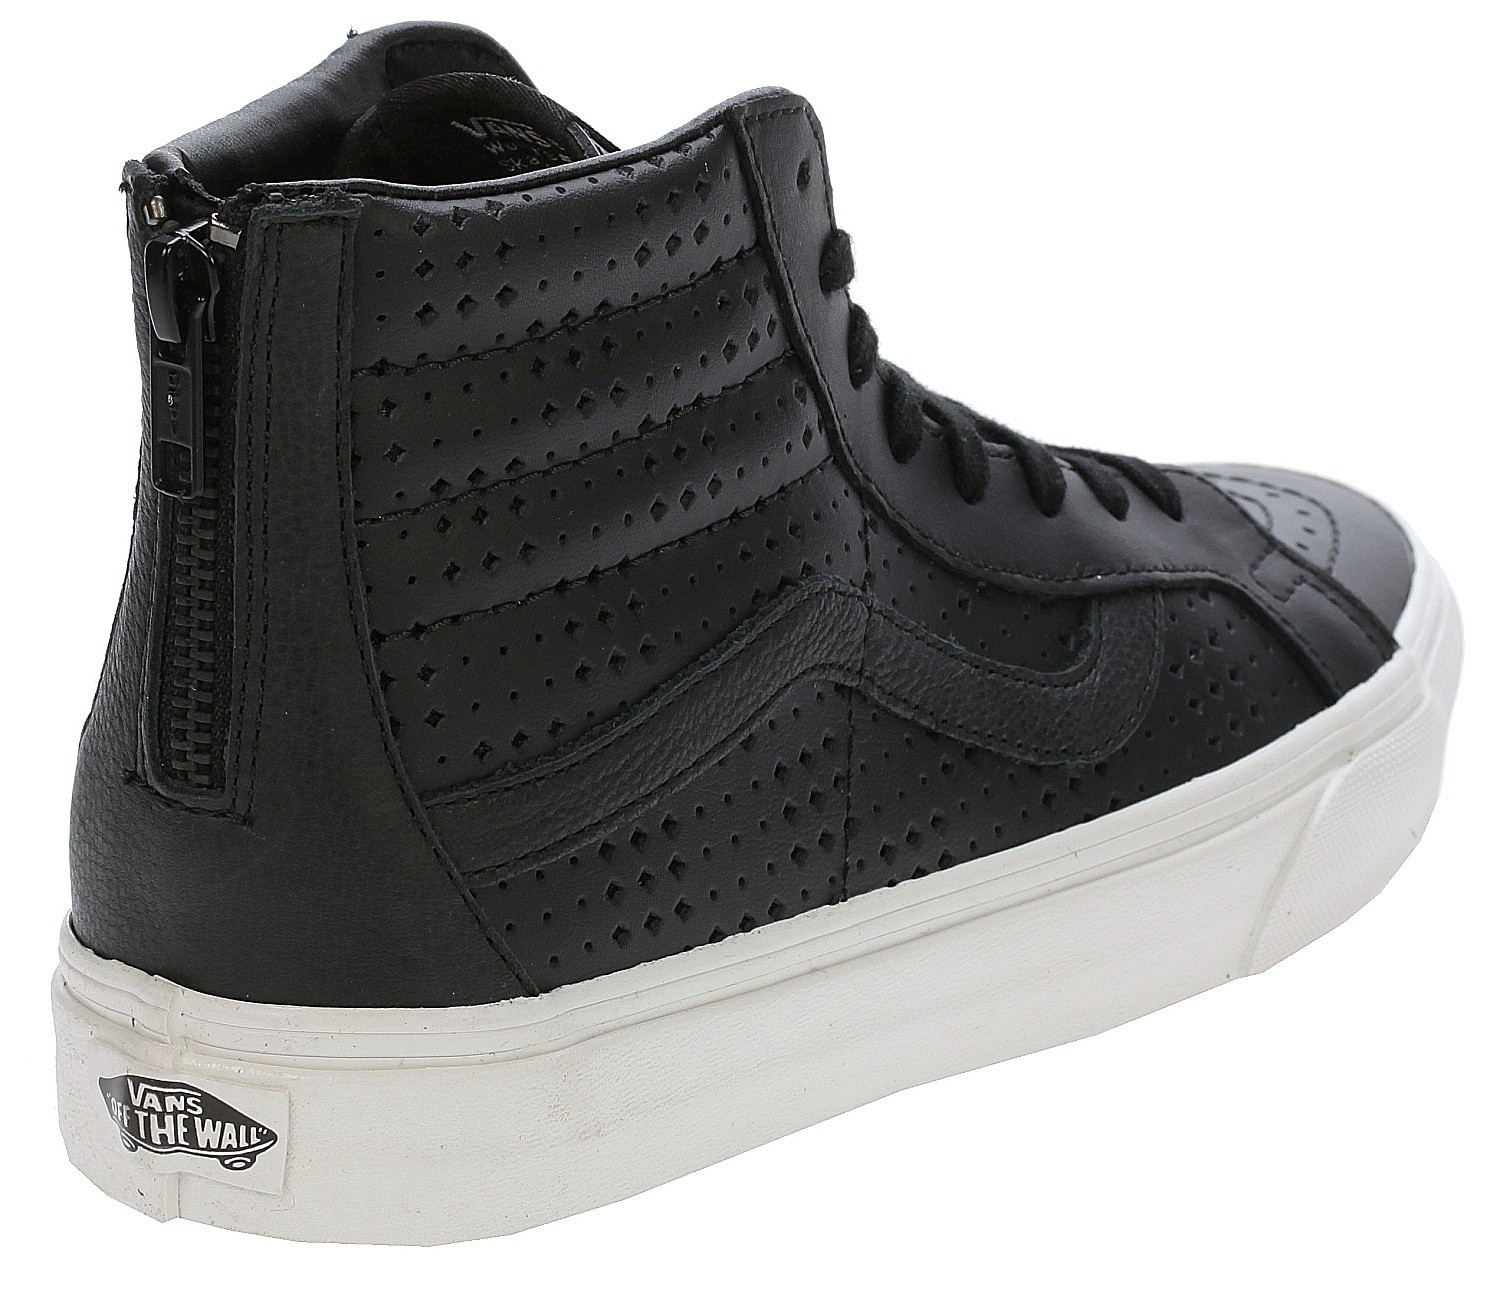 shoes Vans Sk8-Hi Reissue Zip - Leather Perf/Black. In stock -20%